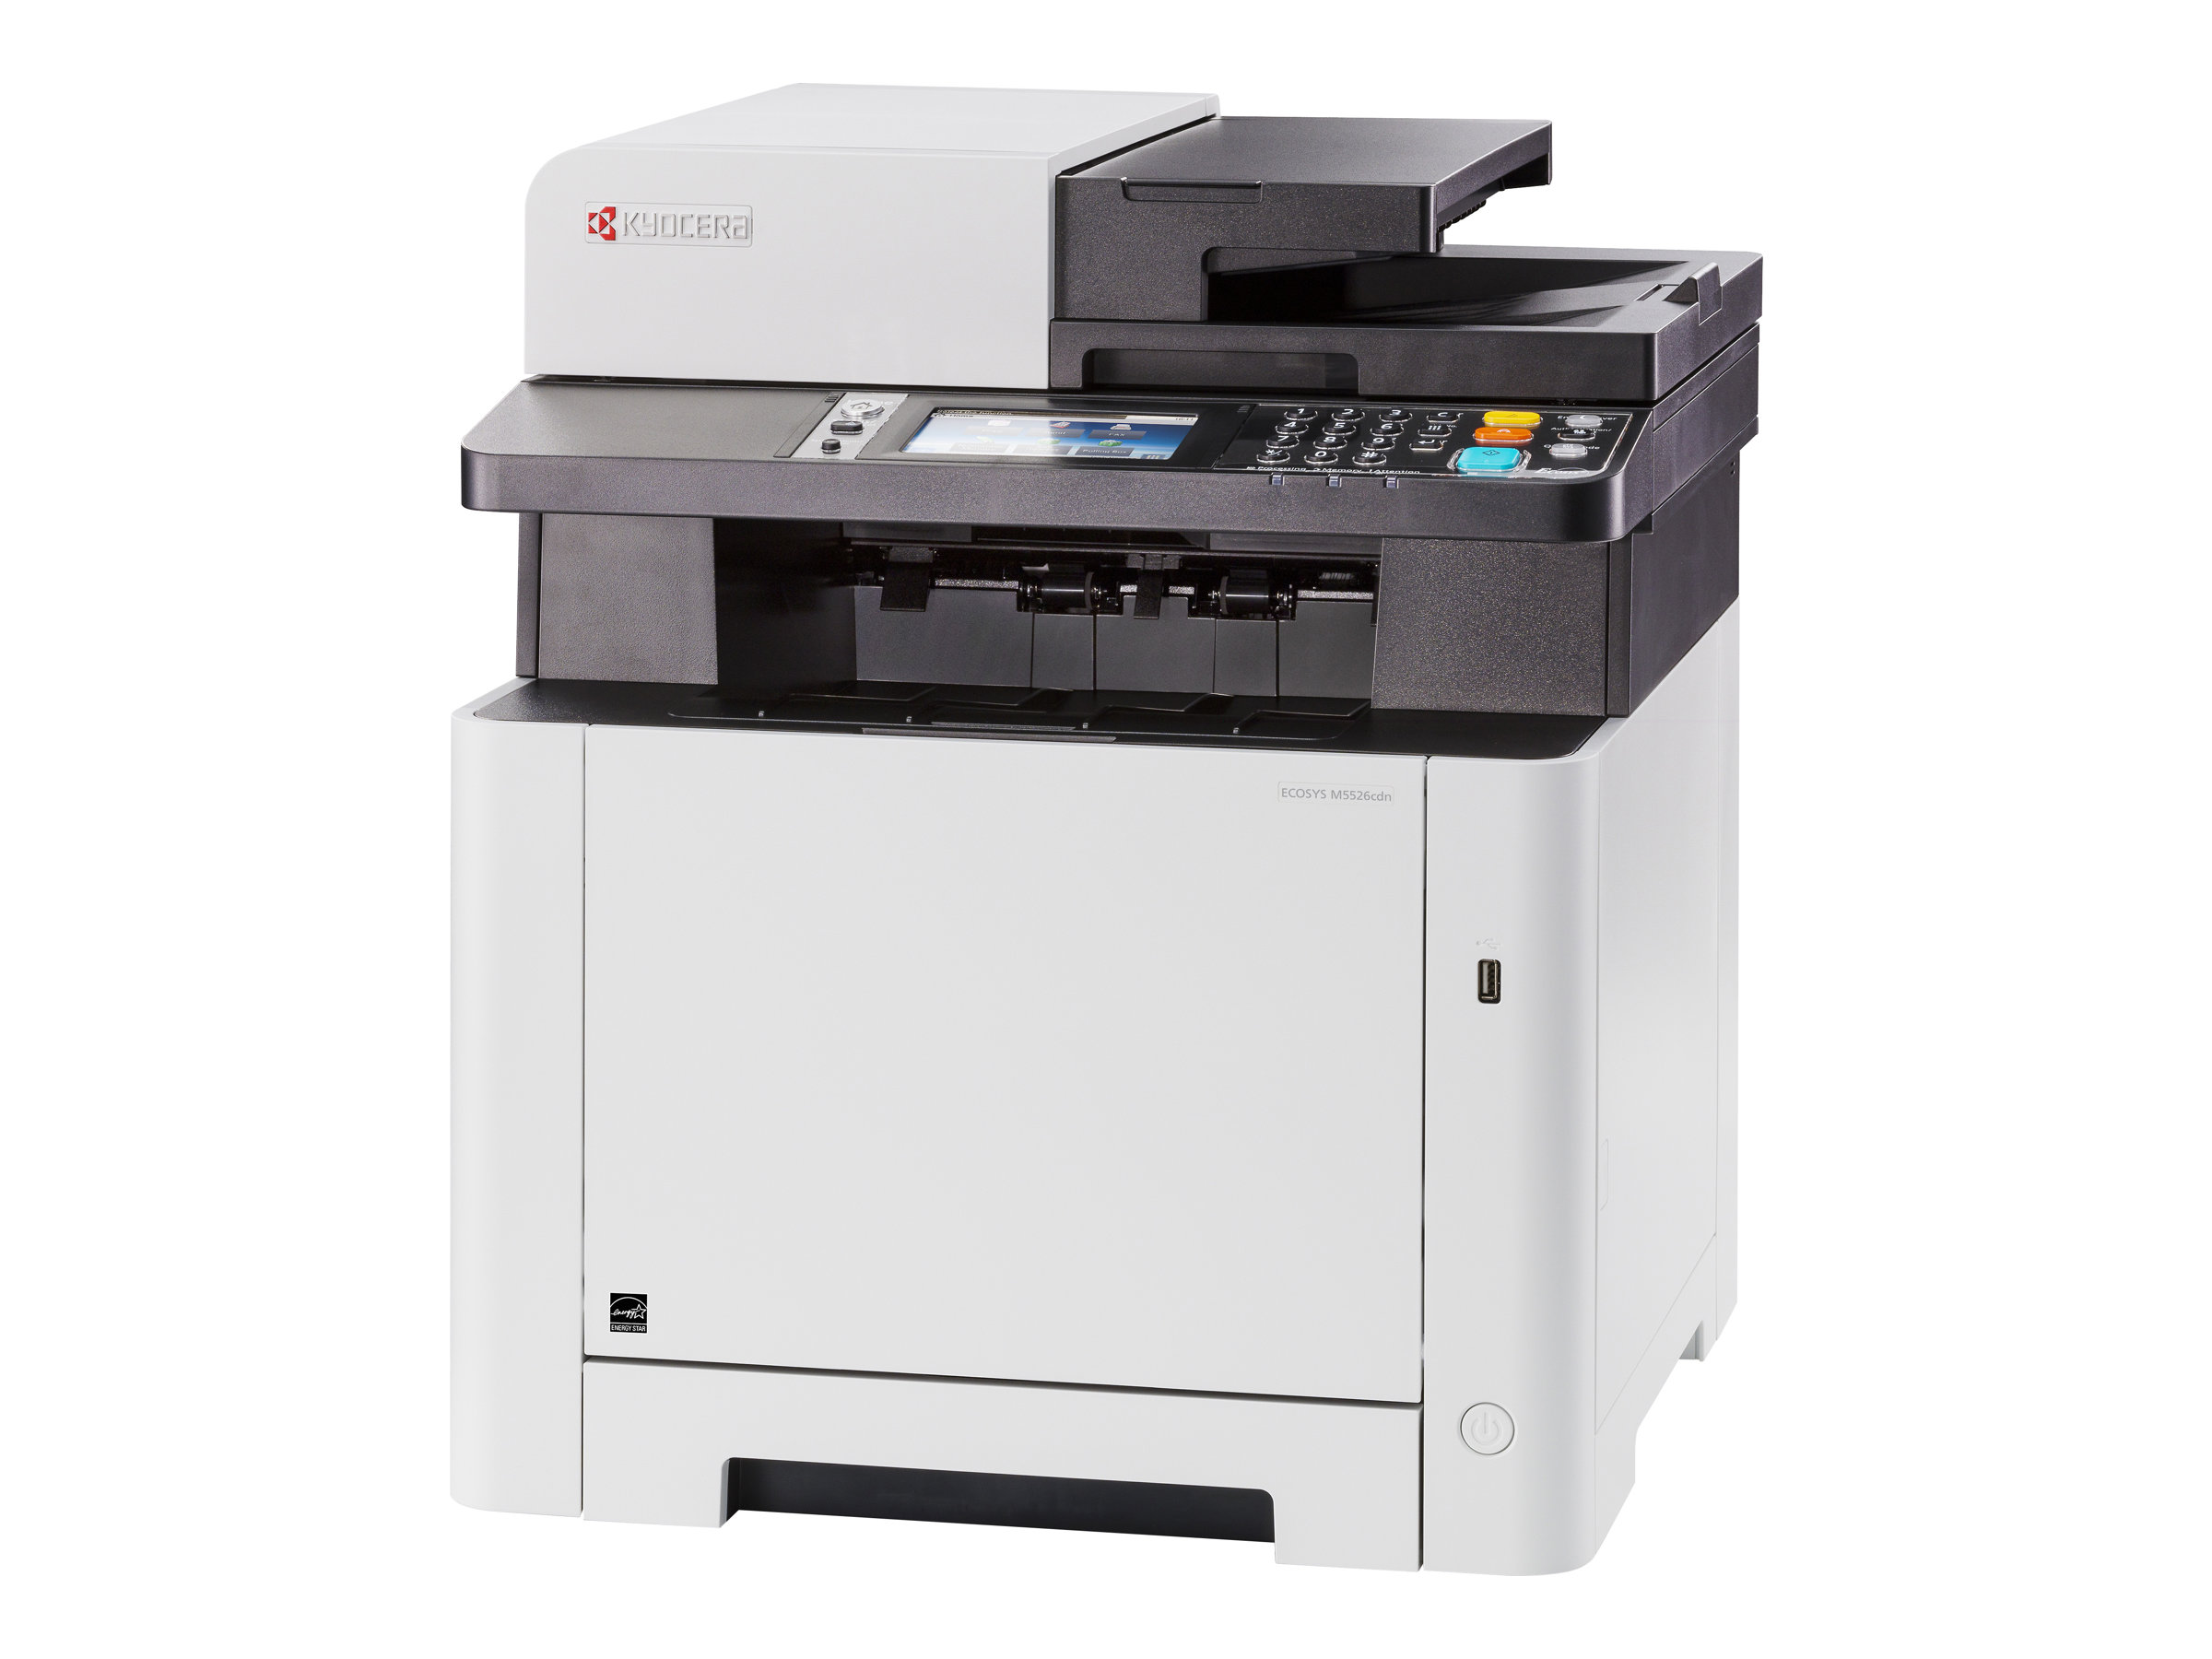 Kyocera ECOSYS M5526cdn - Multifunktionsdrucker